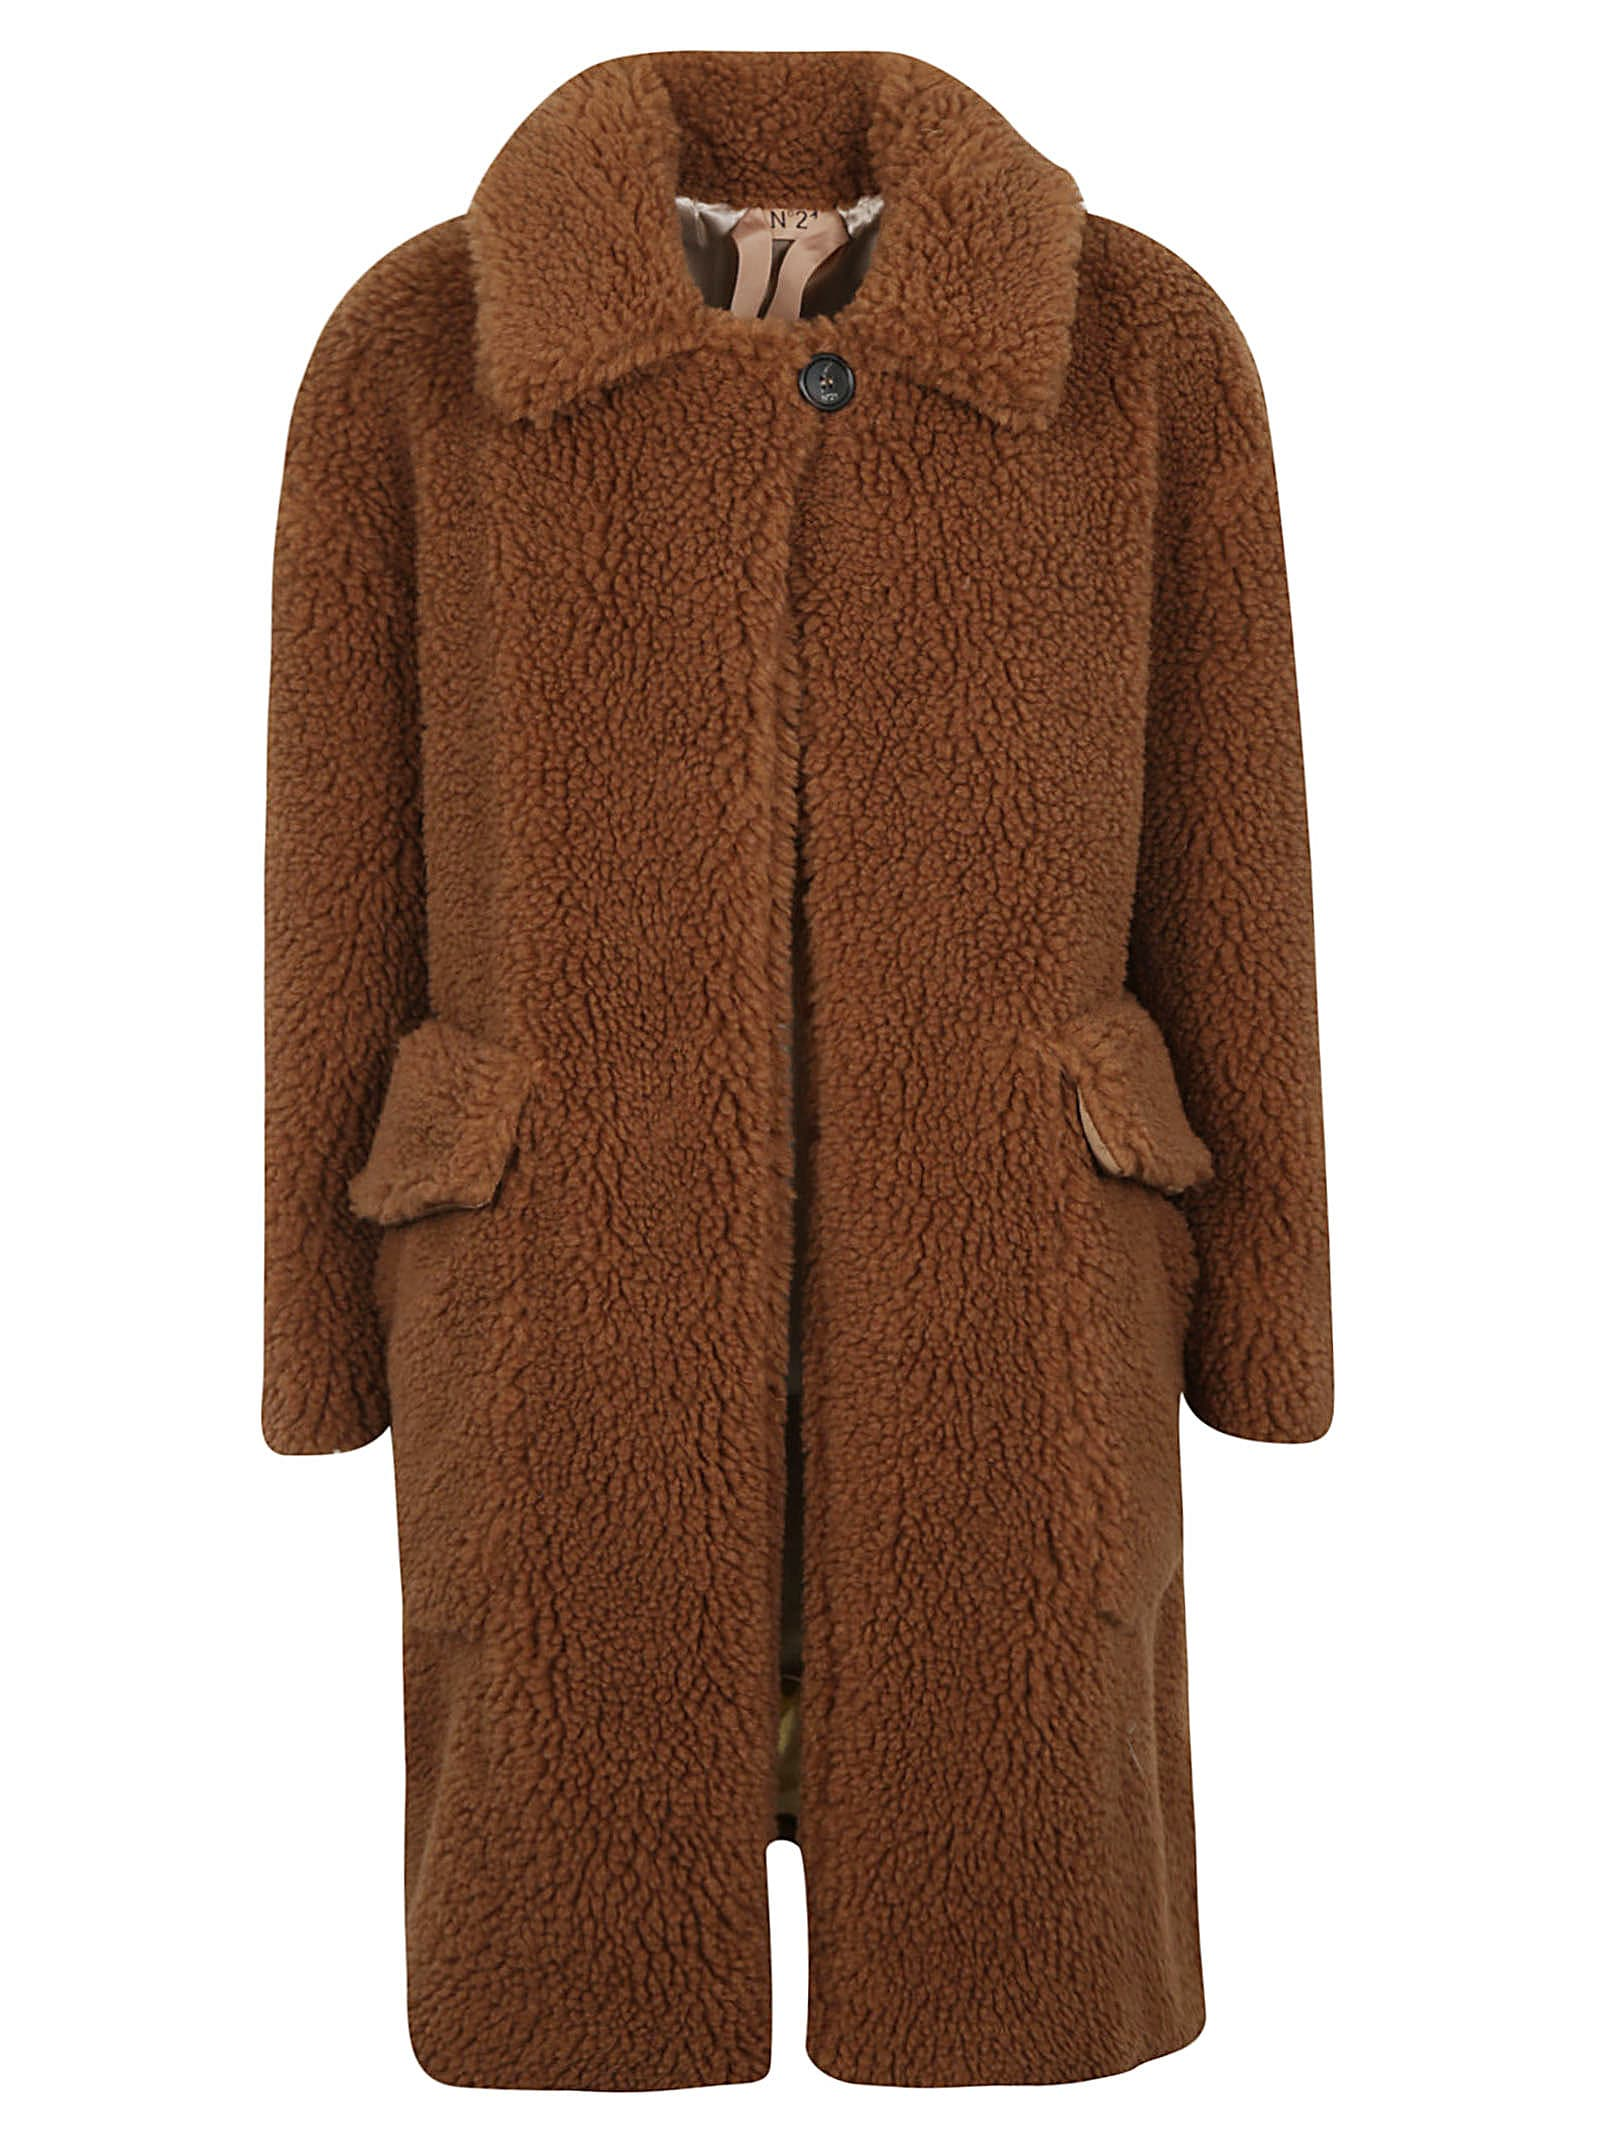 N.21 Buttoned Coat